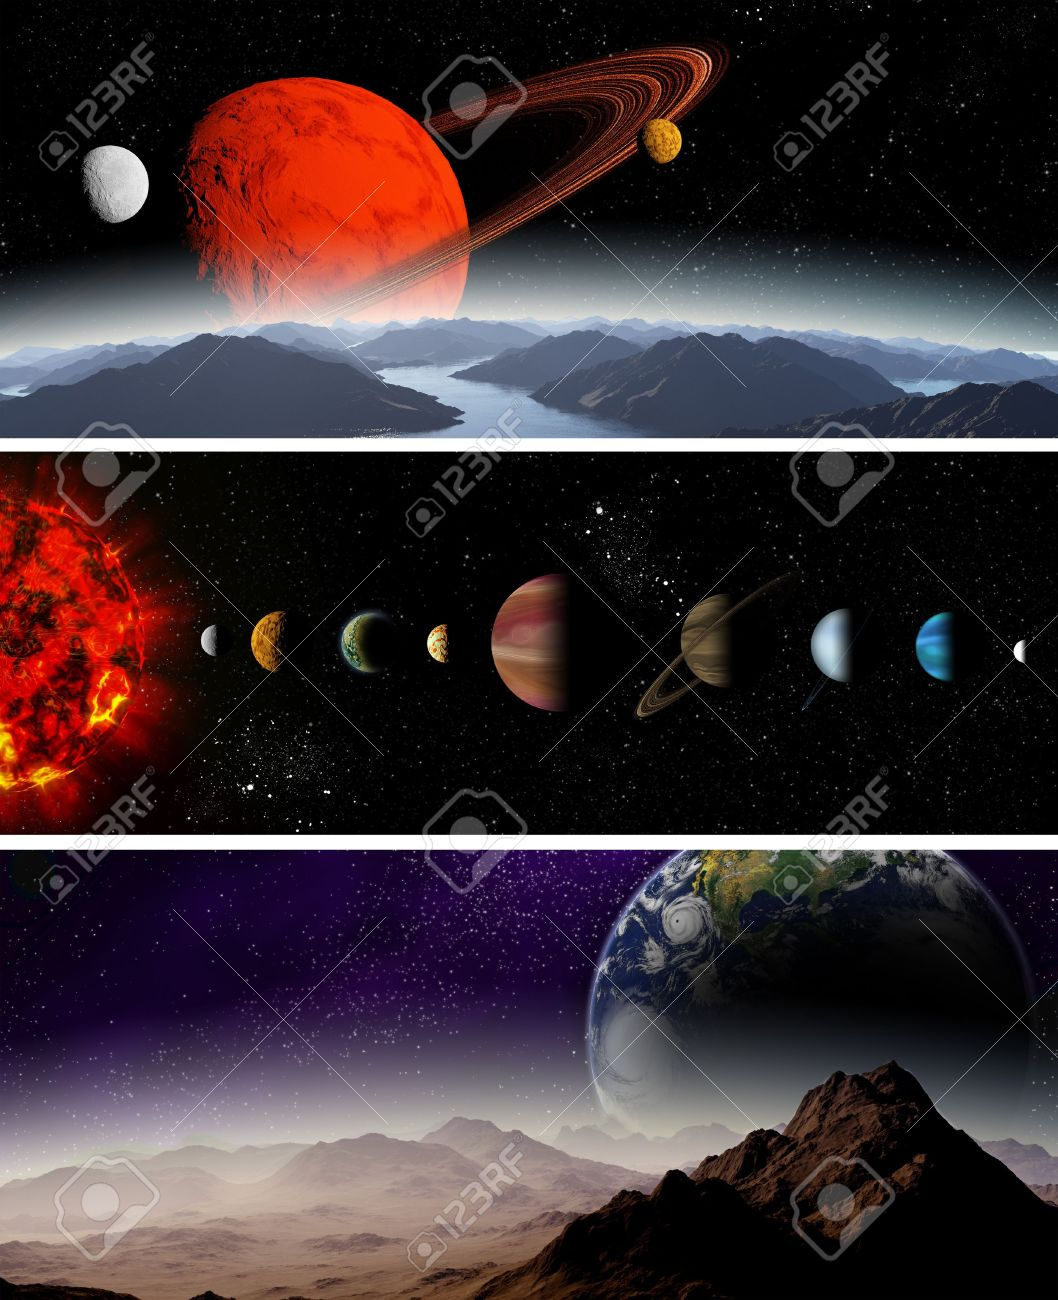 Illustrated diagram showing the order of planets in our solar illustrated diagram showing the order of planets in our solar system abstract illustration of planets ccuart Images